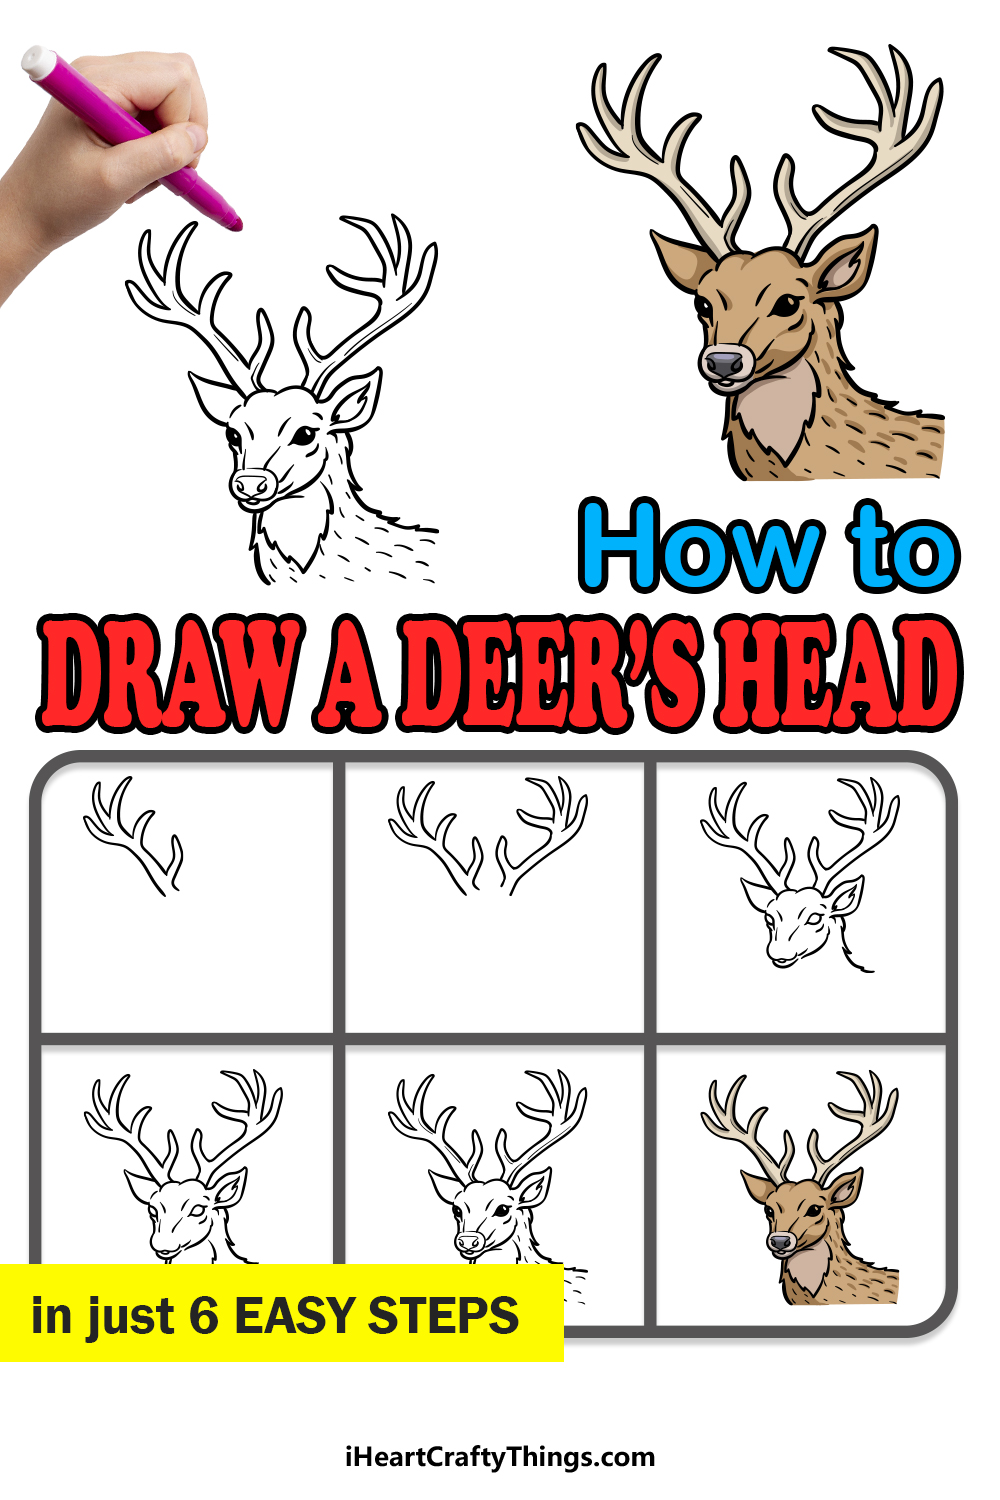 how to draw deer's head in 6 easy steps